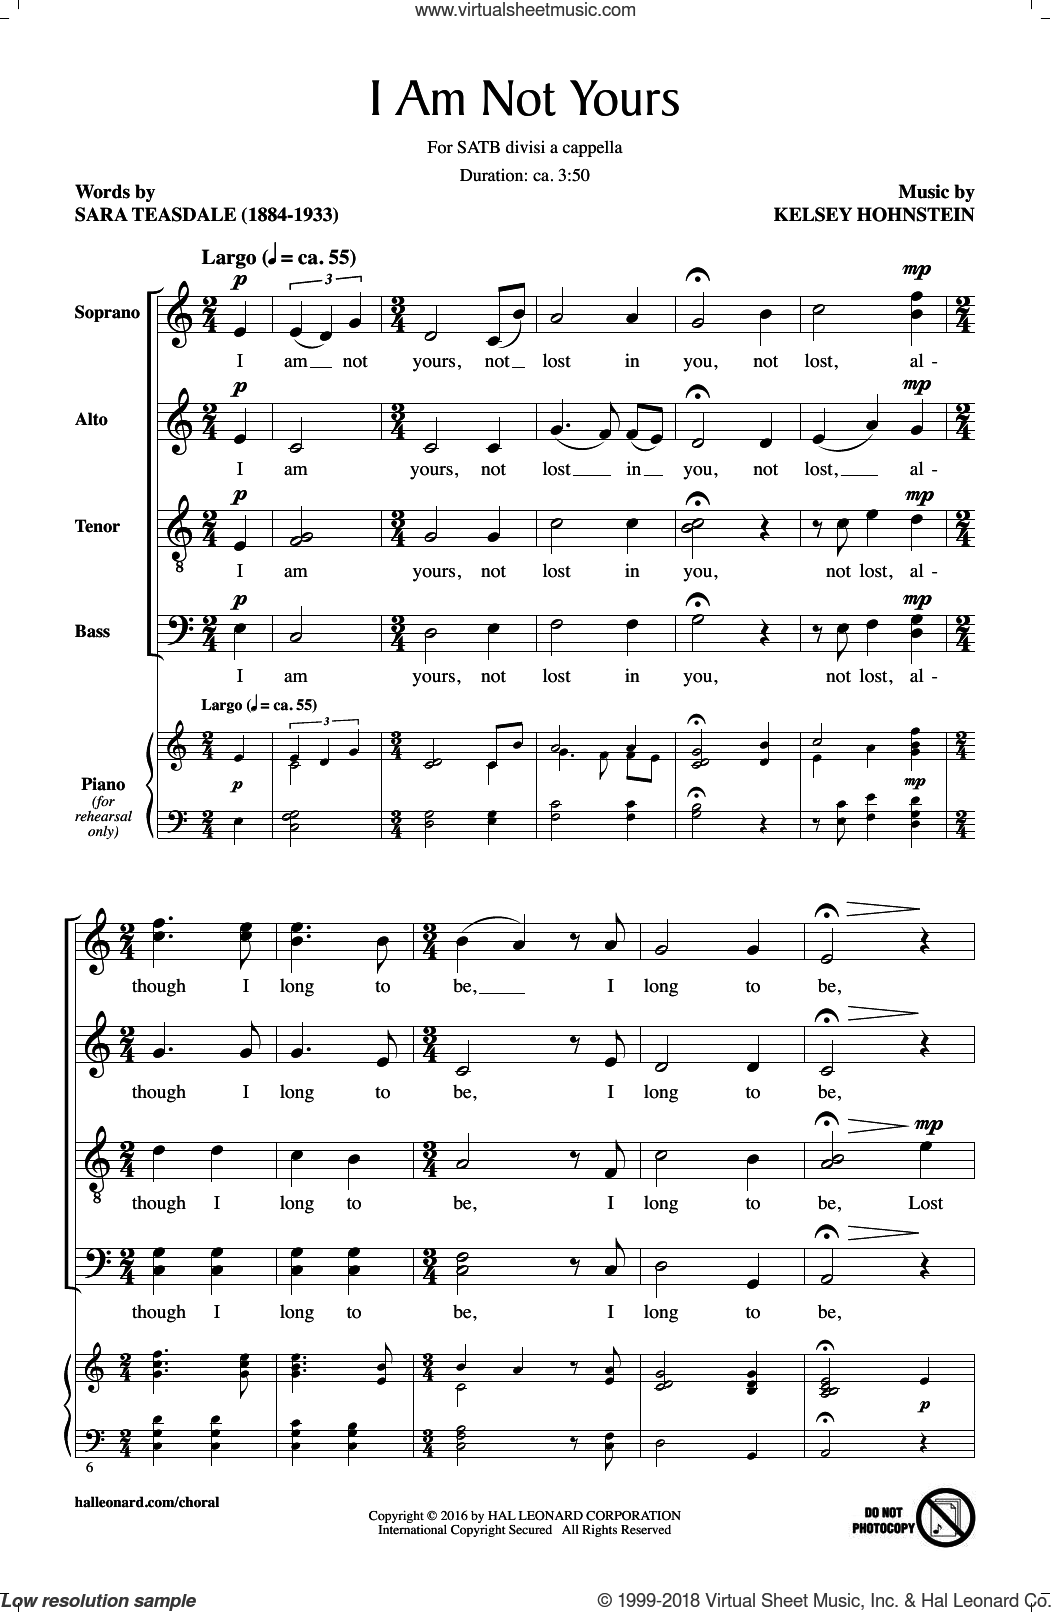 I Am Not Yours sheet music for choir (SATB) by Sara Teasdale. Score Image Preview.